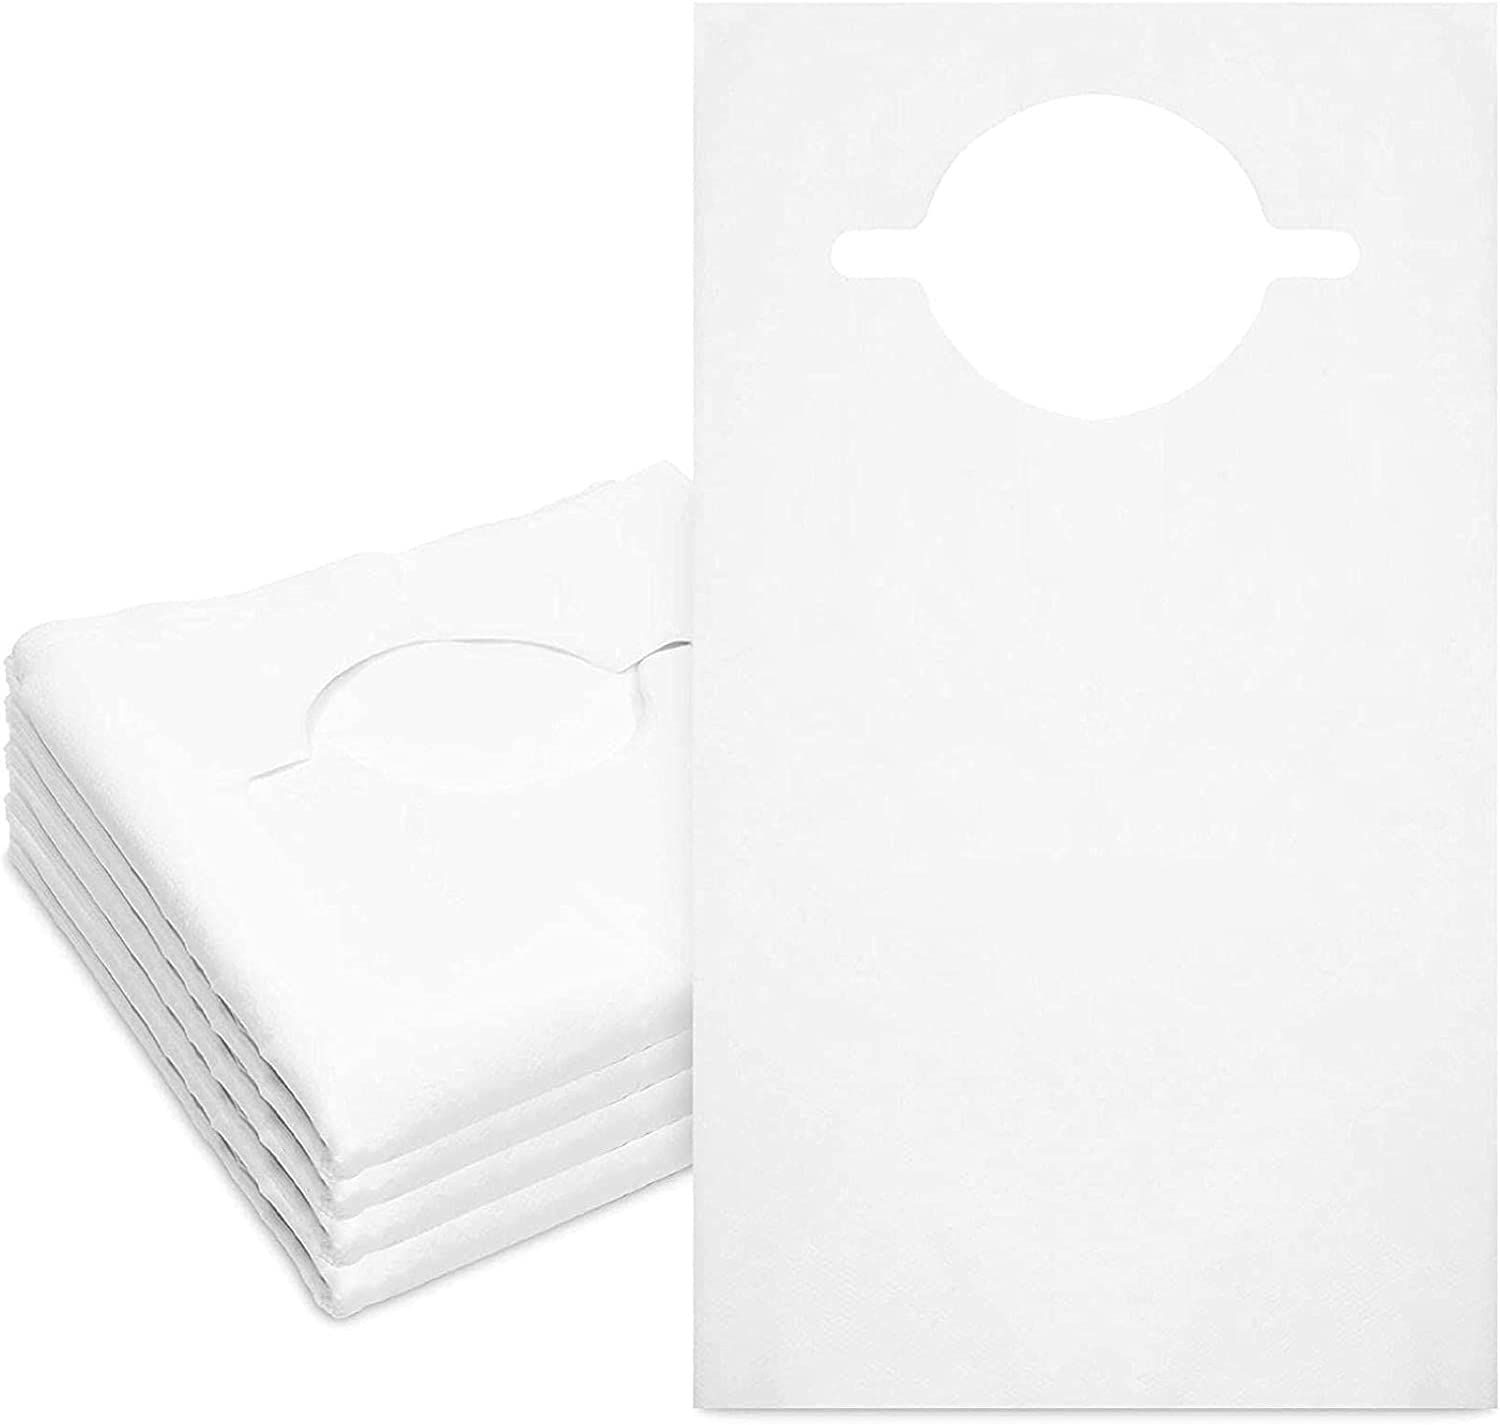 100 Under blast sales Pack Disposable Adult Bibs P Eating Max 62% OFF Single-Use Clothing for